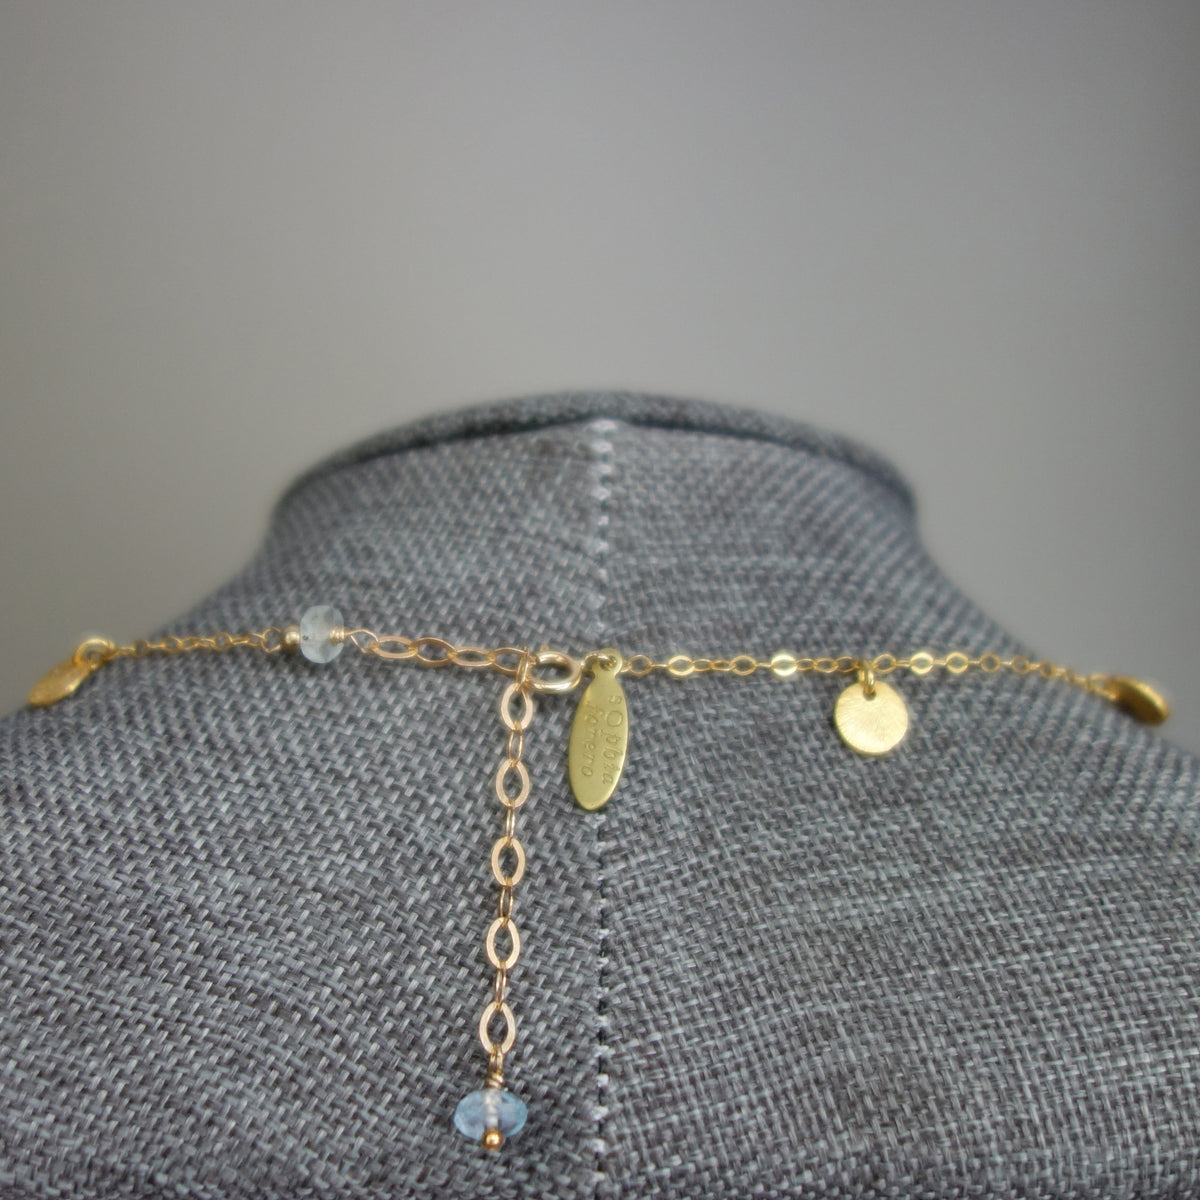 Song Song Blue Topaz necklace